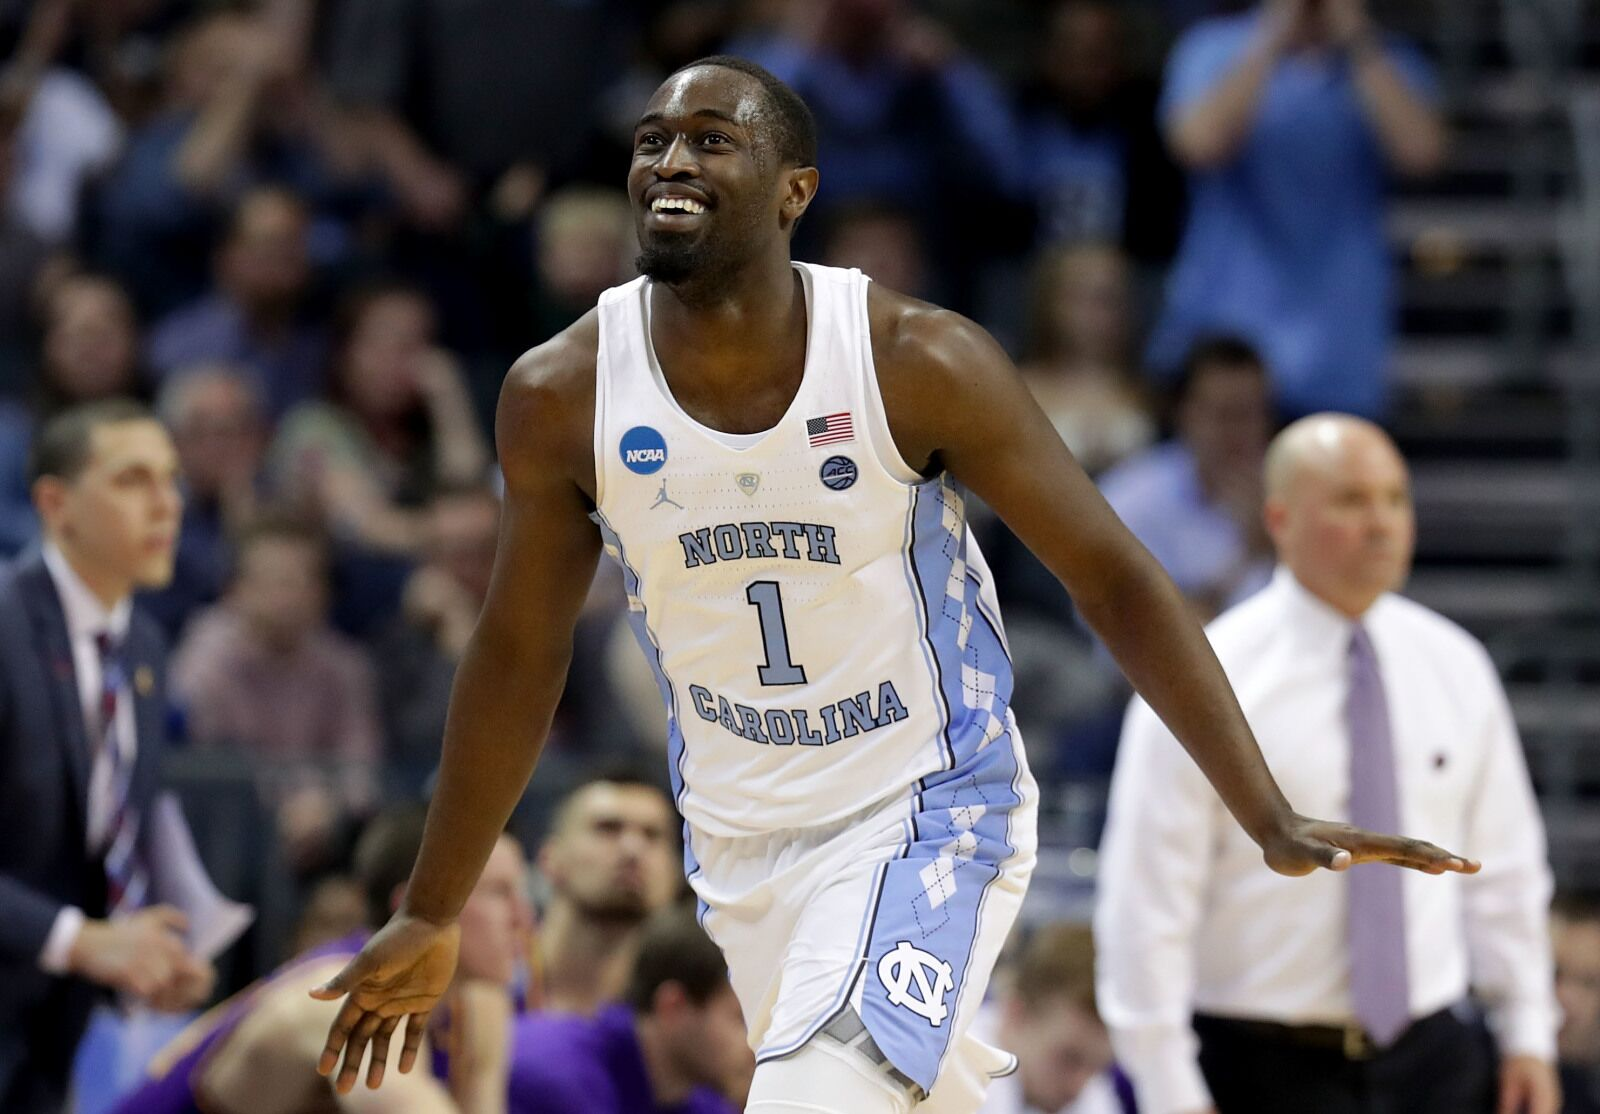 UNC Basketball: Theo Pinson to participate in NBA Draft ...